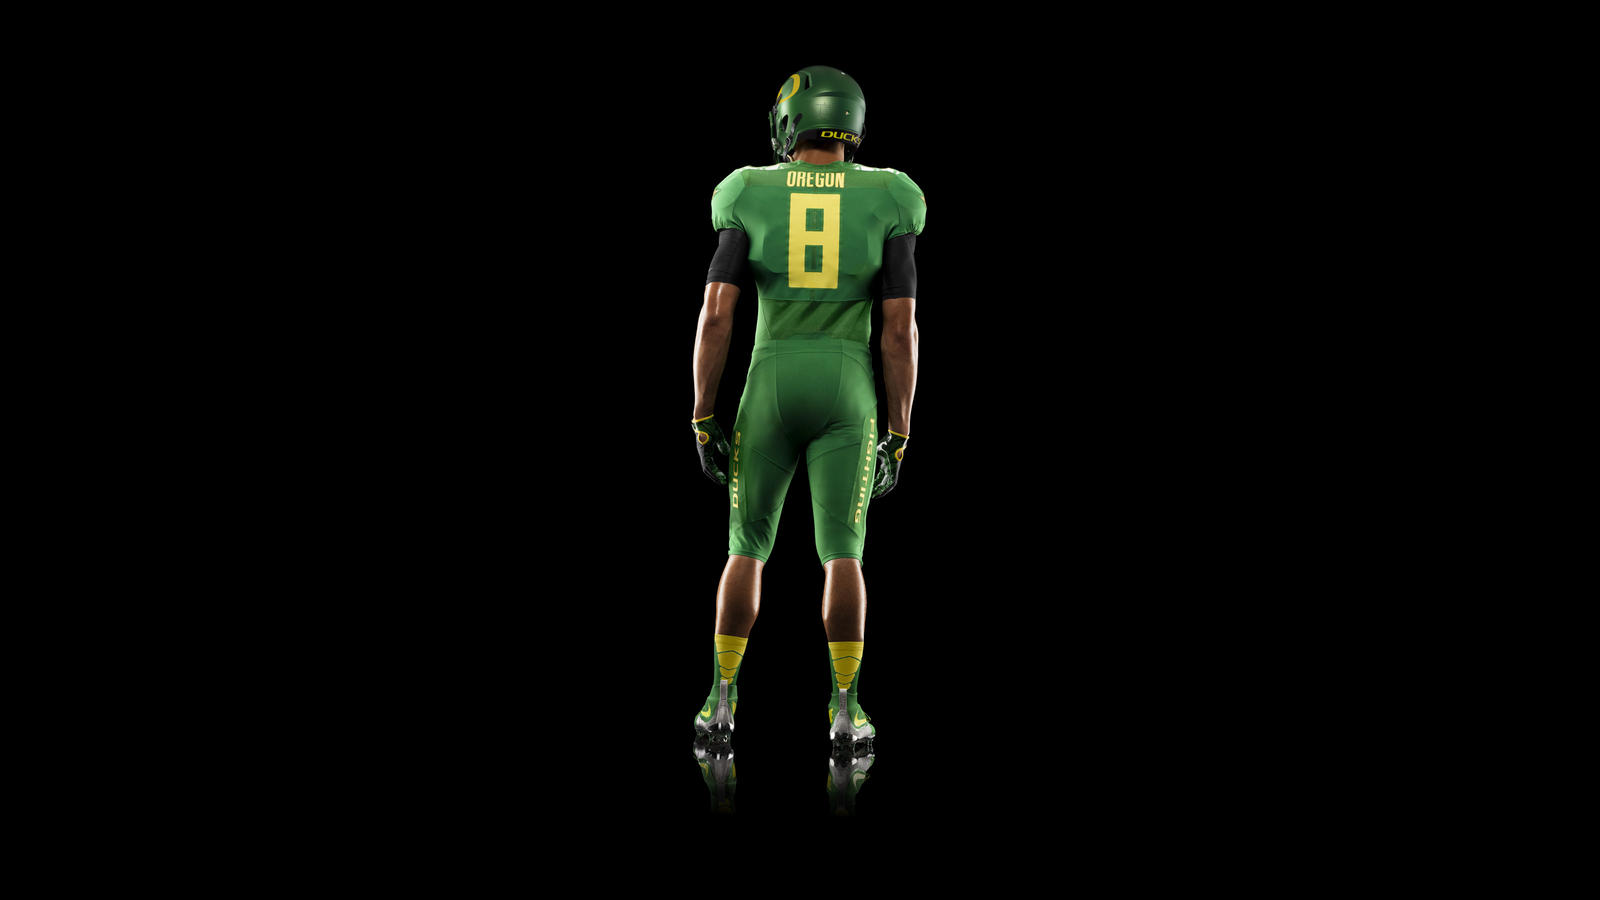 44853_253529_HO14_NFB_NCAA_Oregon_Uniform_439